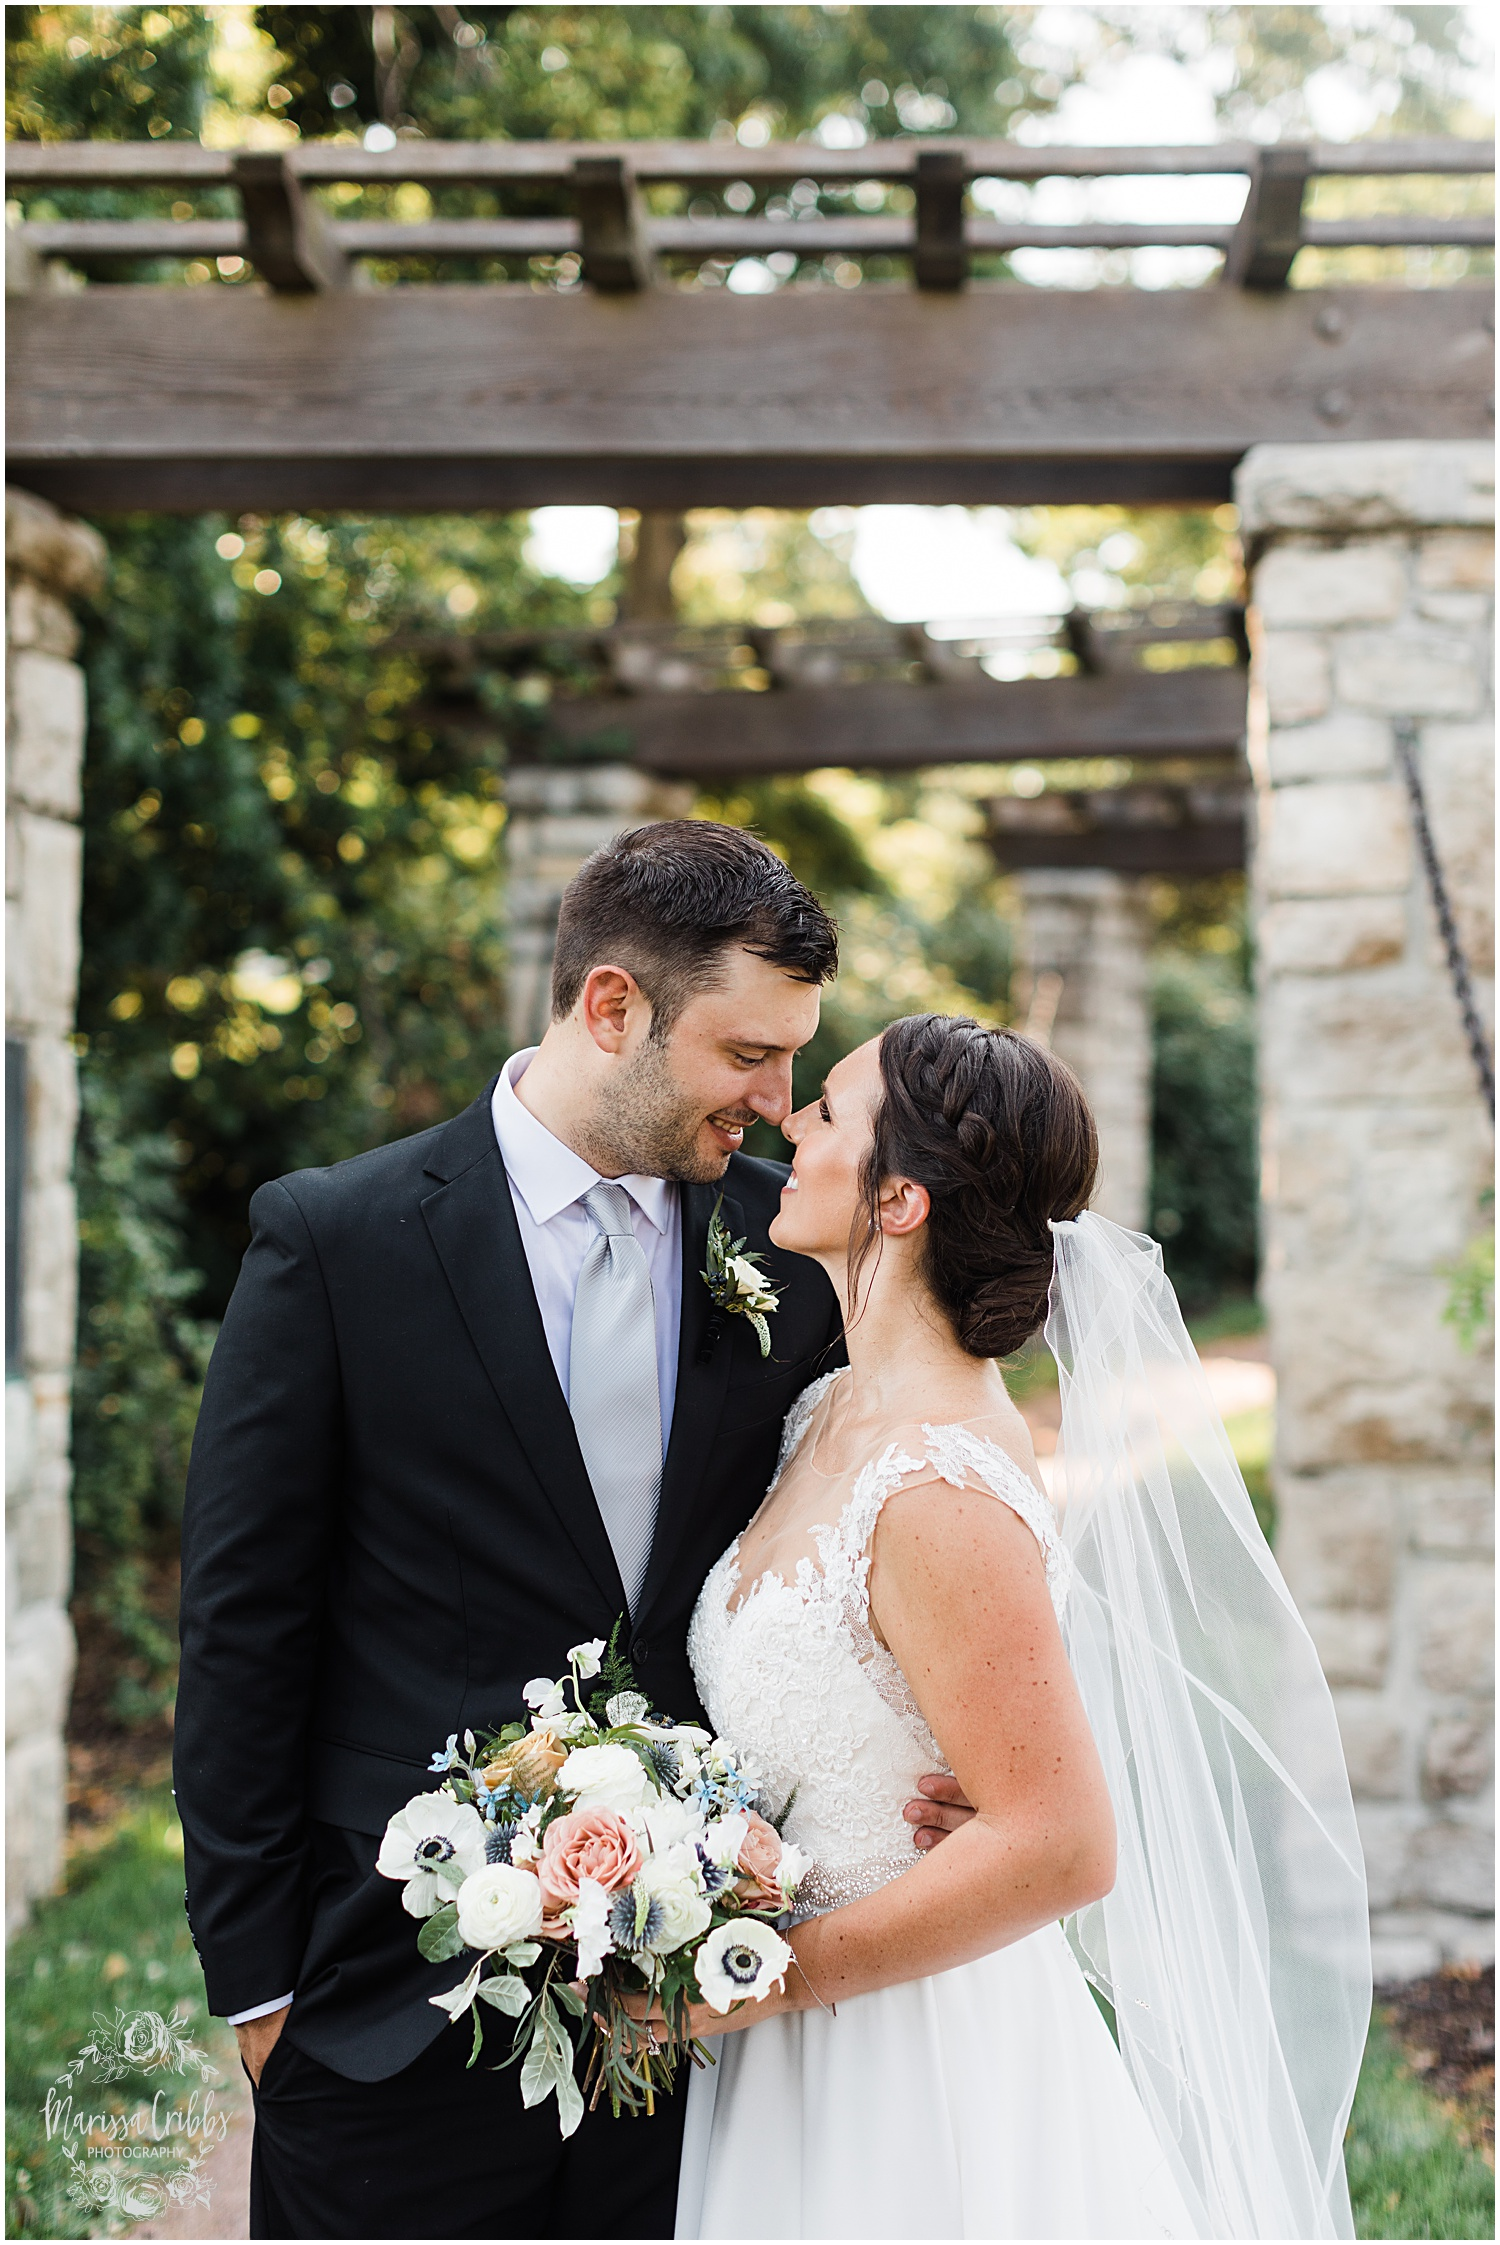 KELLY & MITCH MARRIED BLOG | MARISSA CRIBBS PHOTOGRAPHY | THE EVERLY EVENT SPACE_8868.jpg